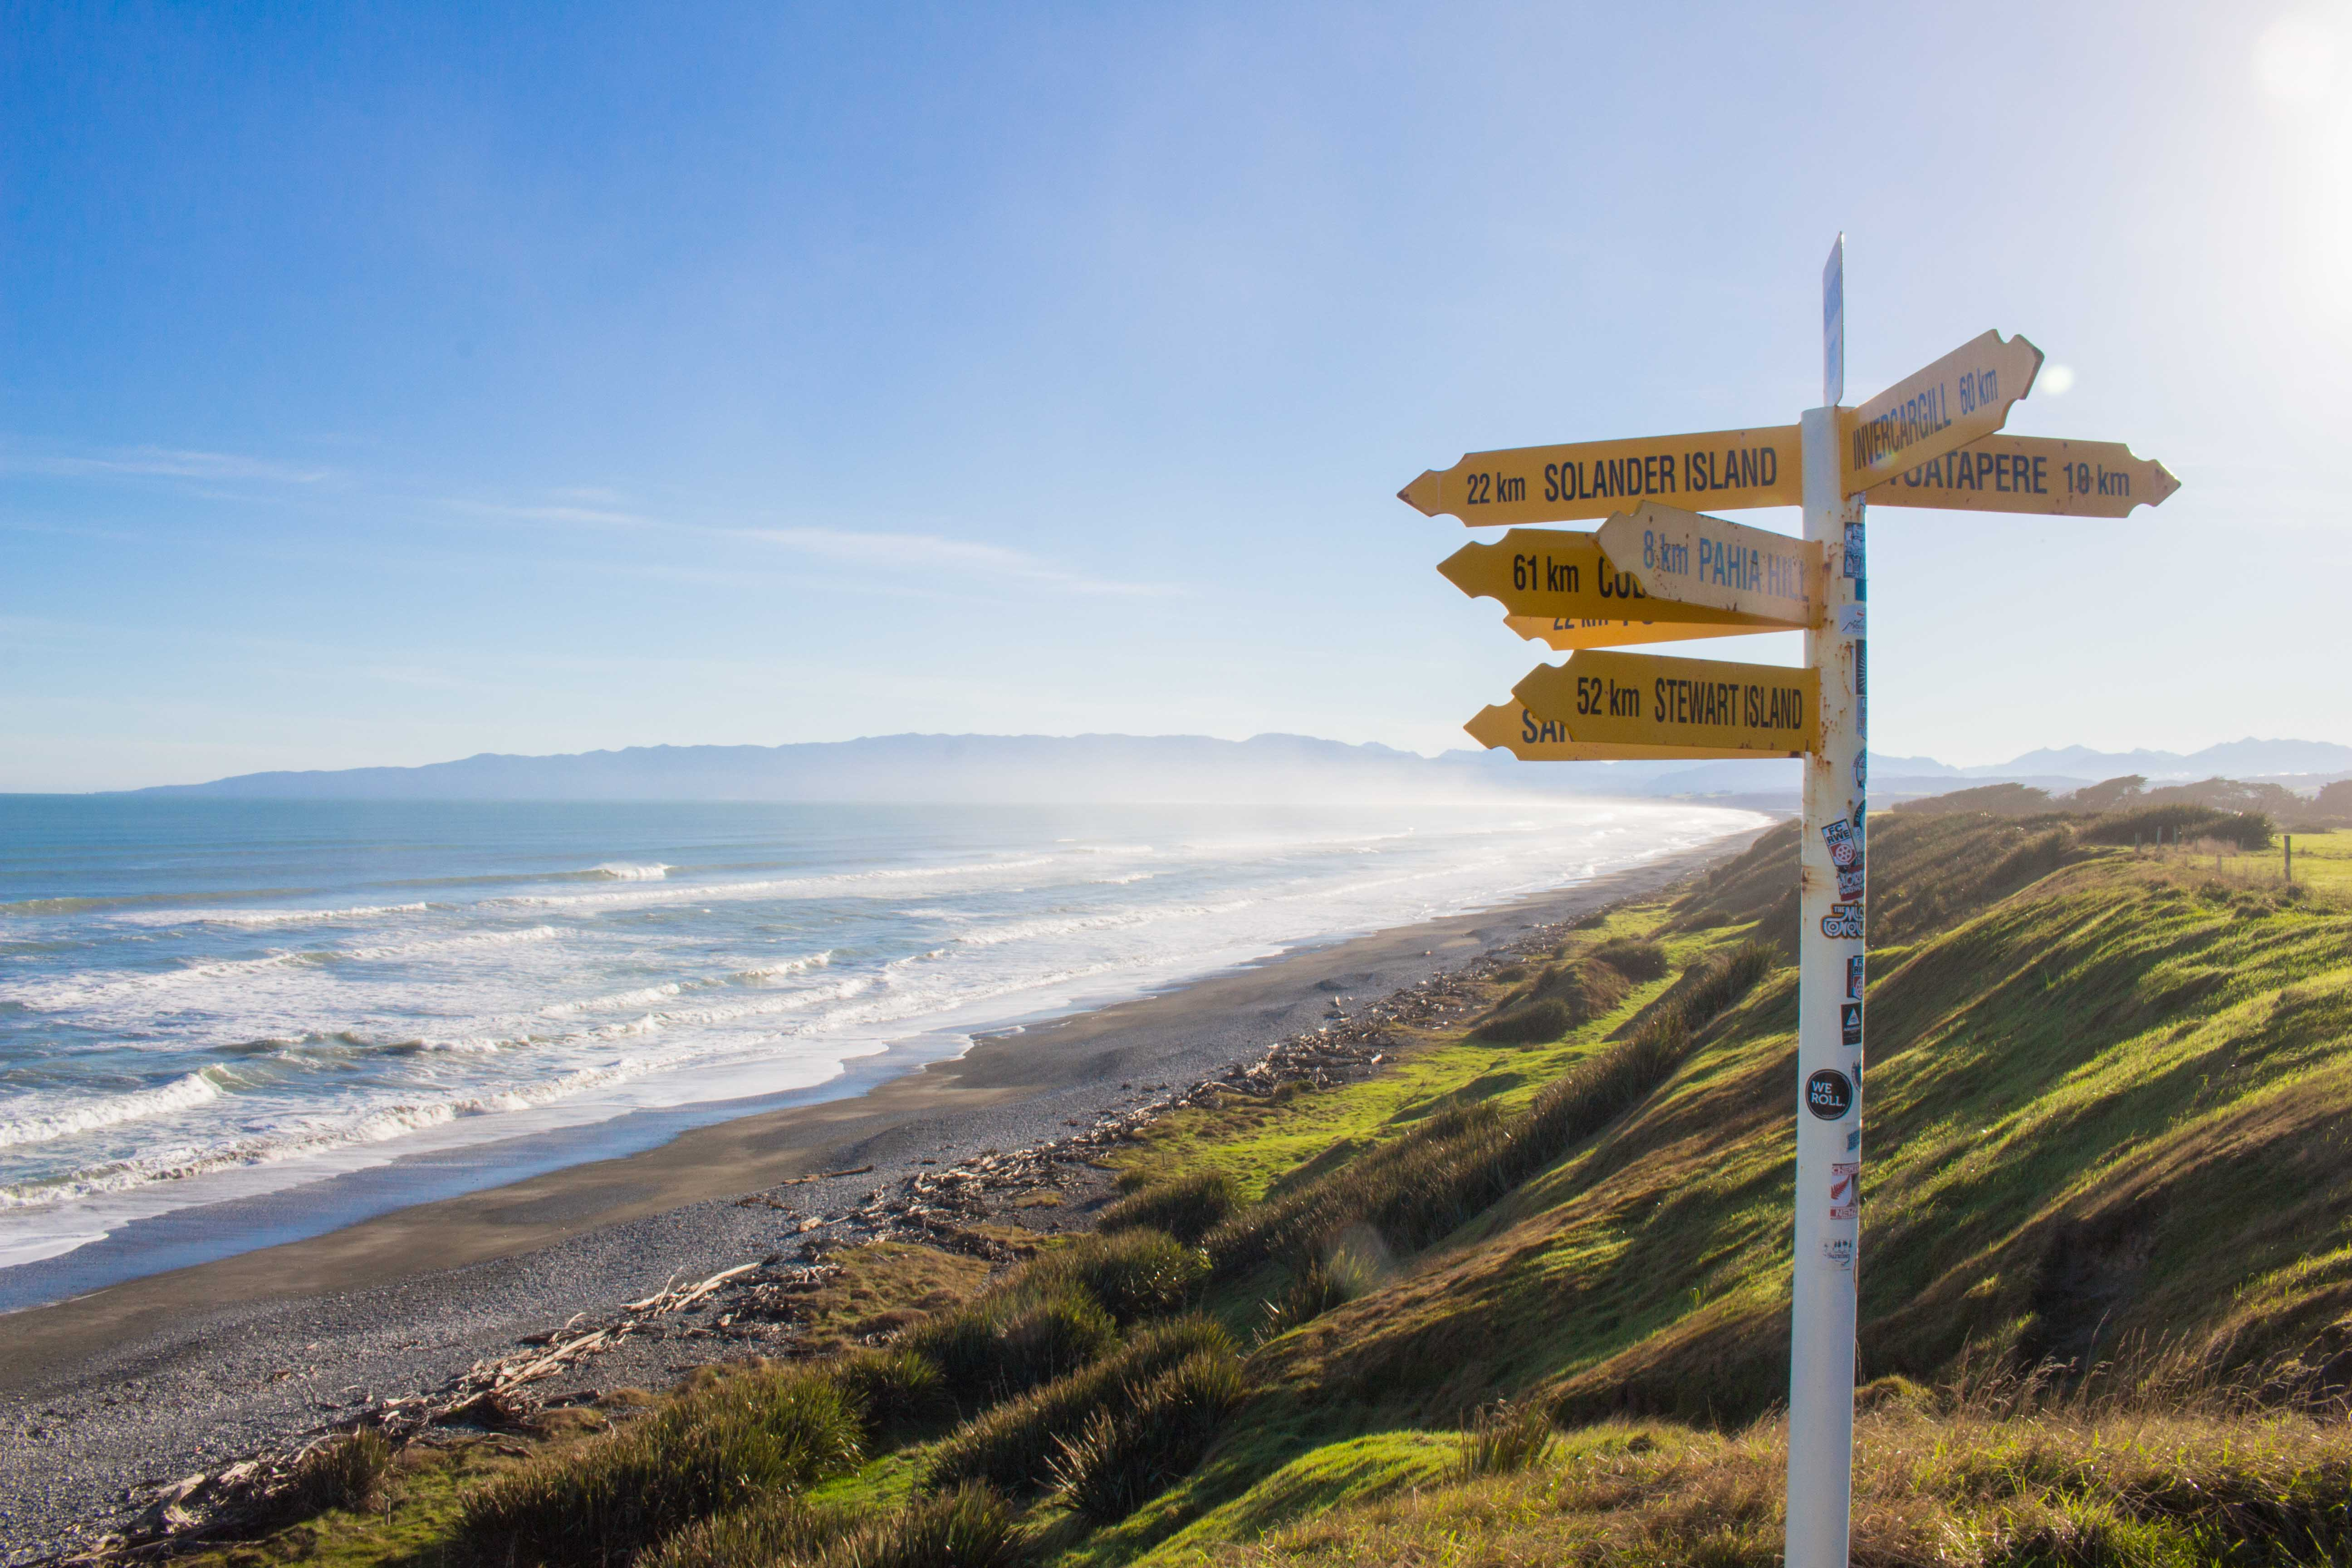 Western Southland Southern Scenic Route